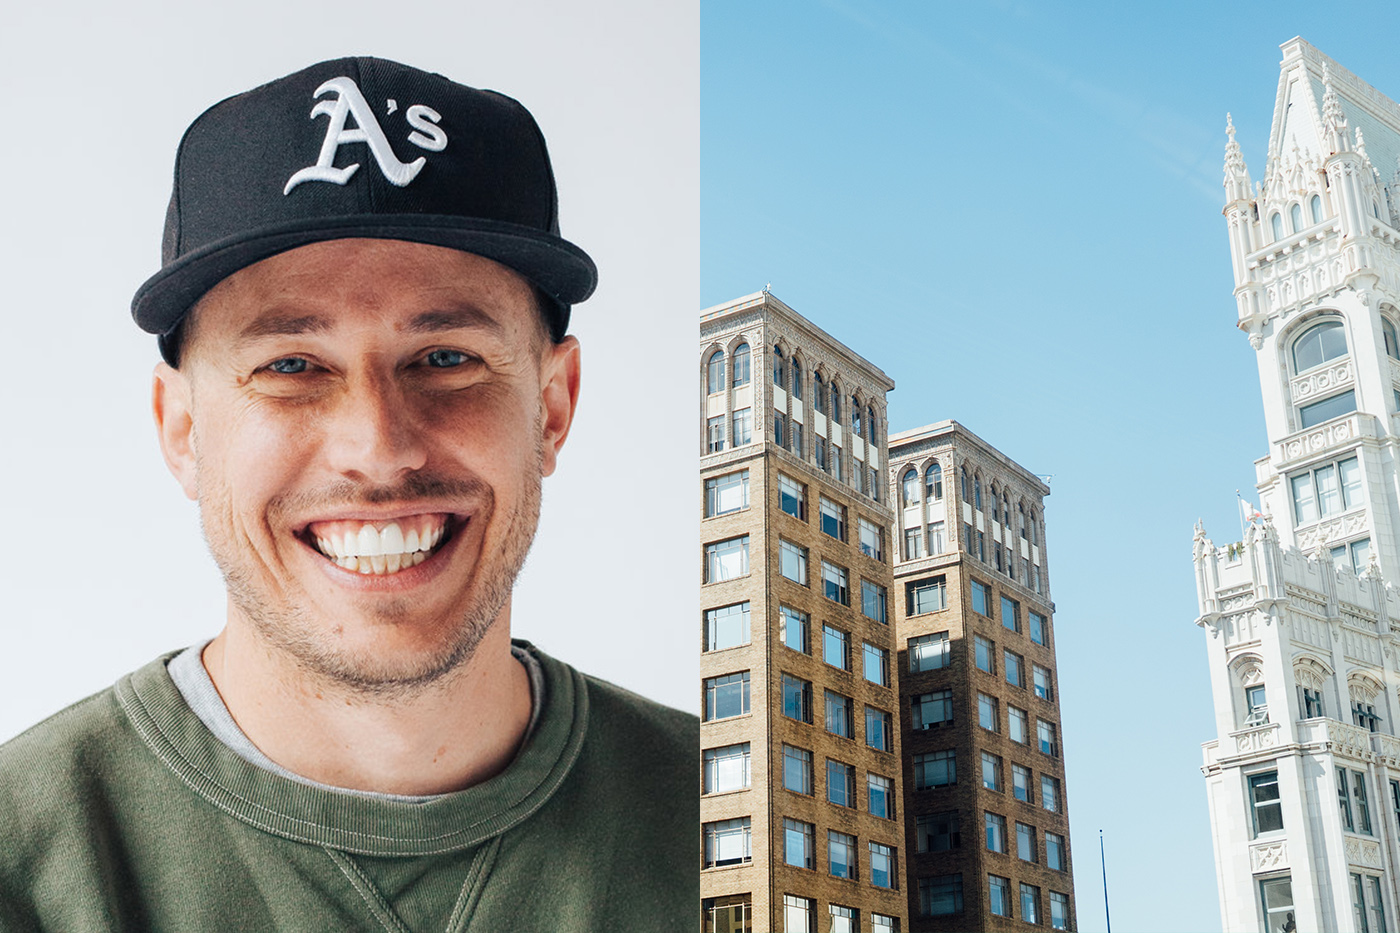 Joel Flory at Collision: Building your global content community   June 26, 2019 — Content may be king, but what does it take to build a global content community? Joel Flory, CEO and Co-founder of VSCO, gives key insights on building inspiring content and the power of community.